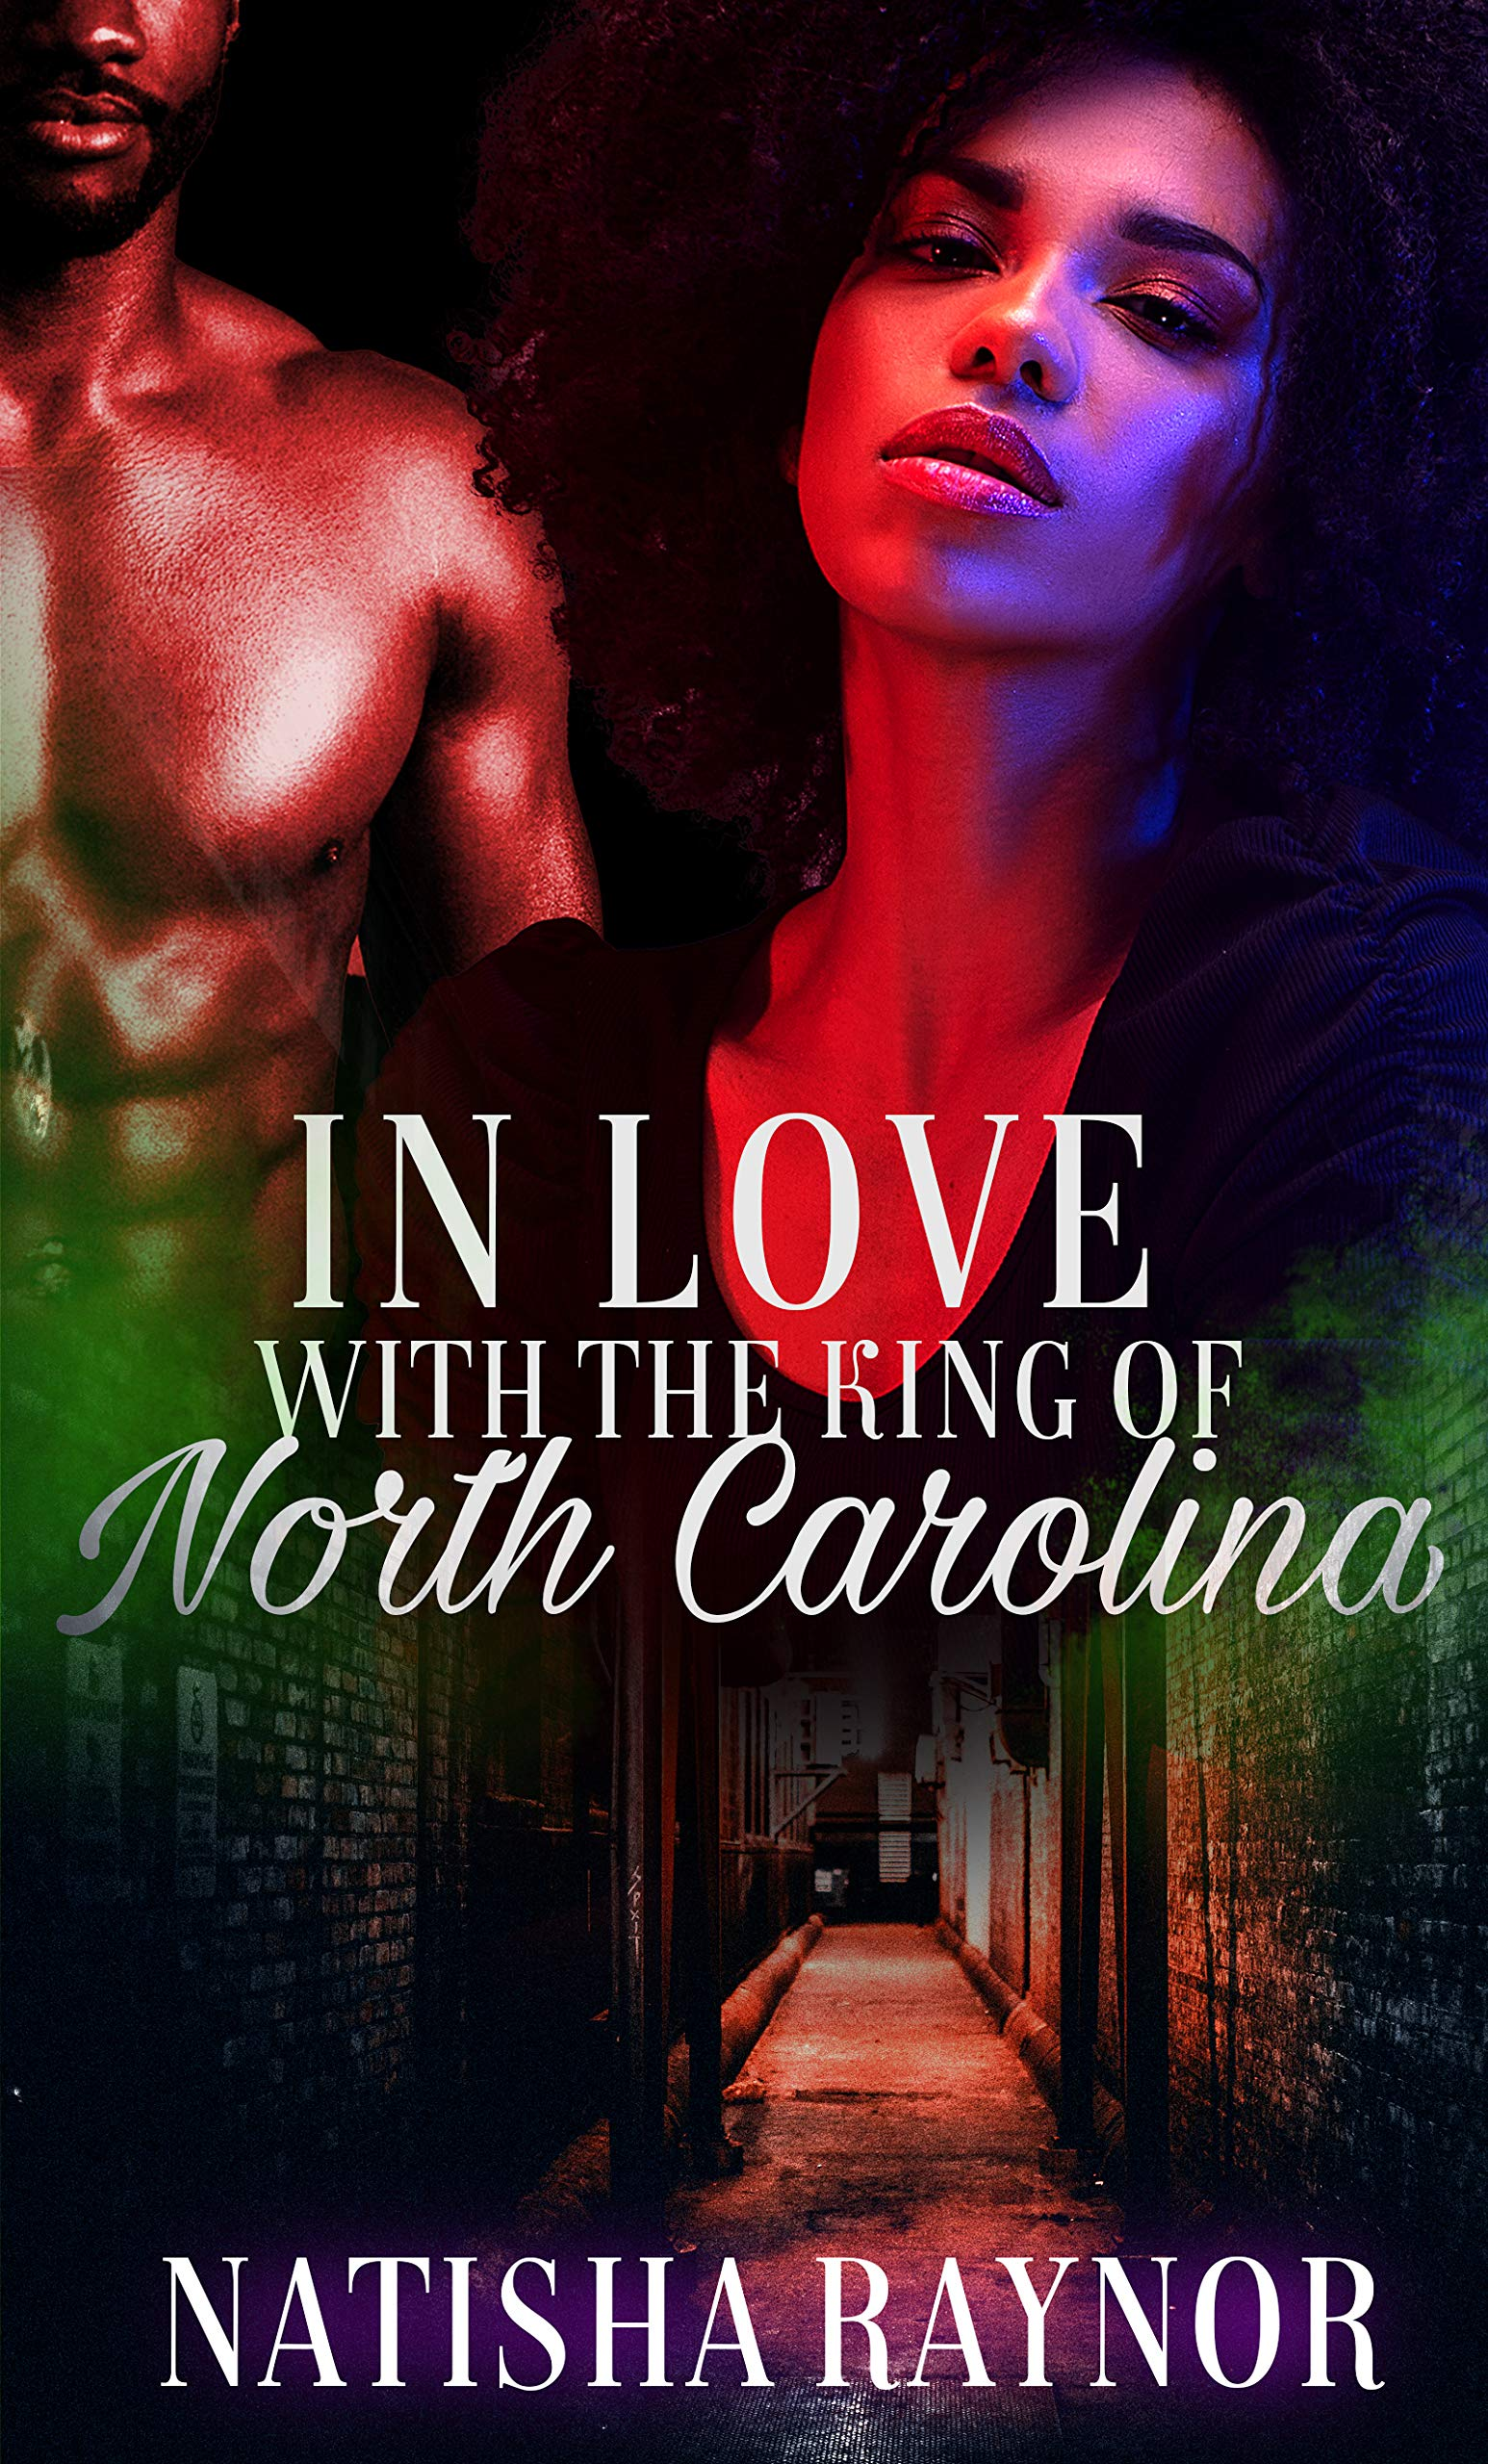 In Love with the King of North Carolina